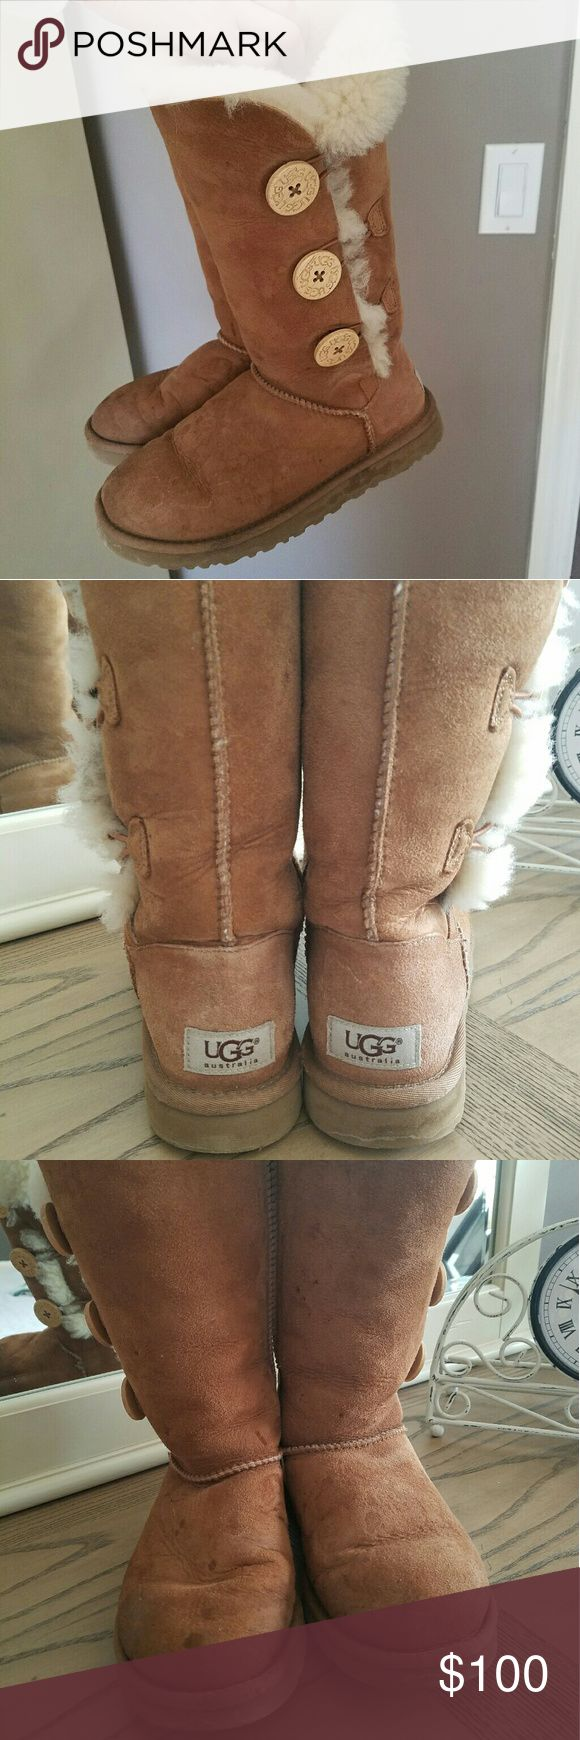 Ugg size 6 bailey triple button boots Pre-loved uggs! Size 6, but I wear a 5.5 normally but I always wore these with thick socks. I never sprayed them, but they can be professionally cleaned by most local dry cleaners. They still have a lot of life left! I never tried to get them cleaned, I'm sure they would turn out great! UGG Shoes Winter & Rain Boots